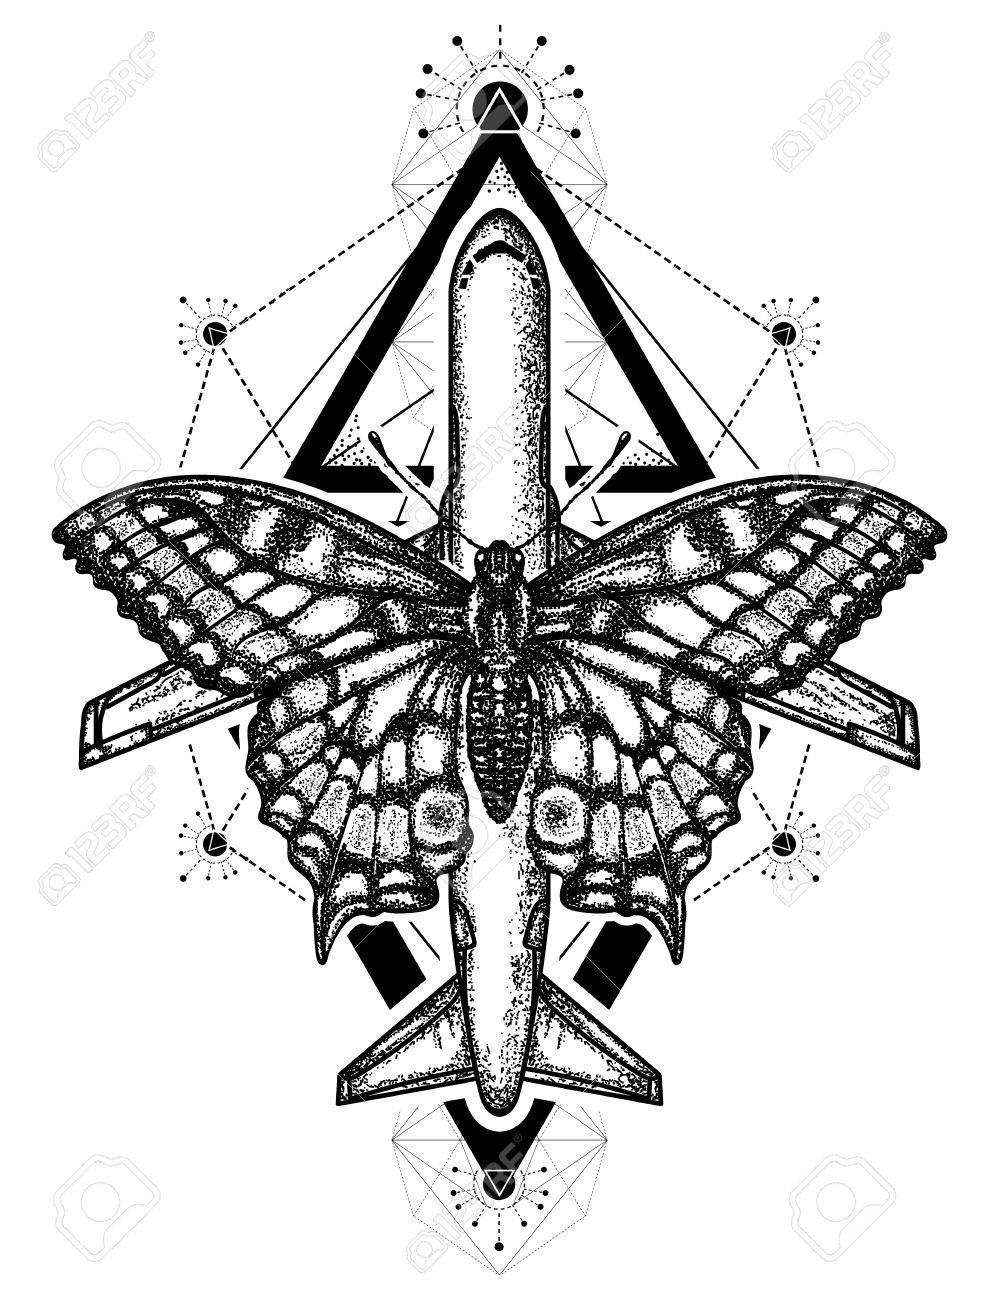 Butterfly And Air Plane Tattoo And T Shirt Design Symbol Of